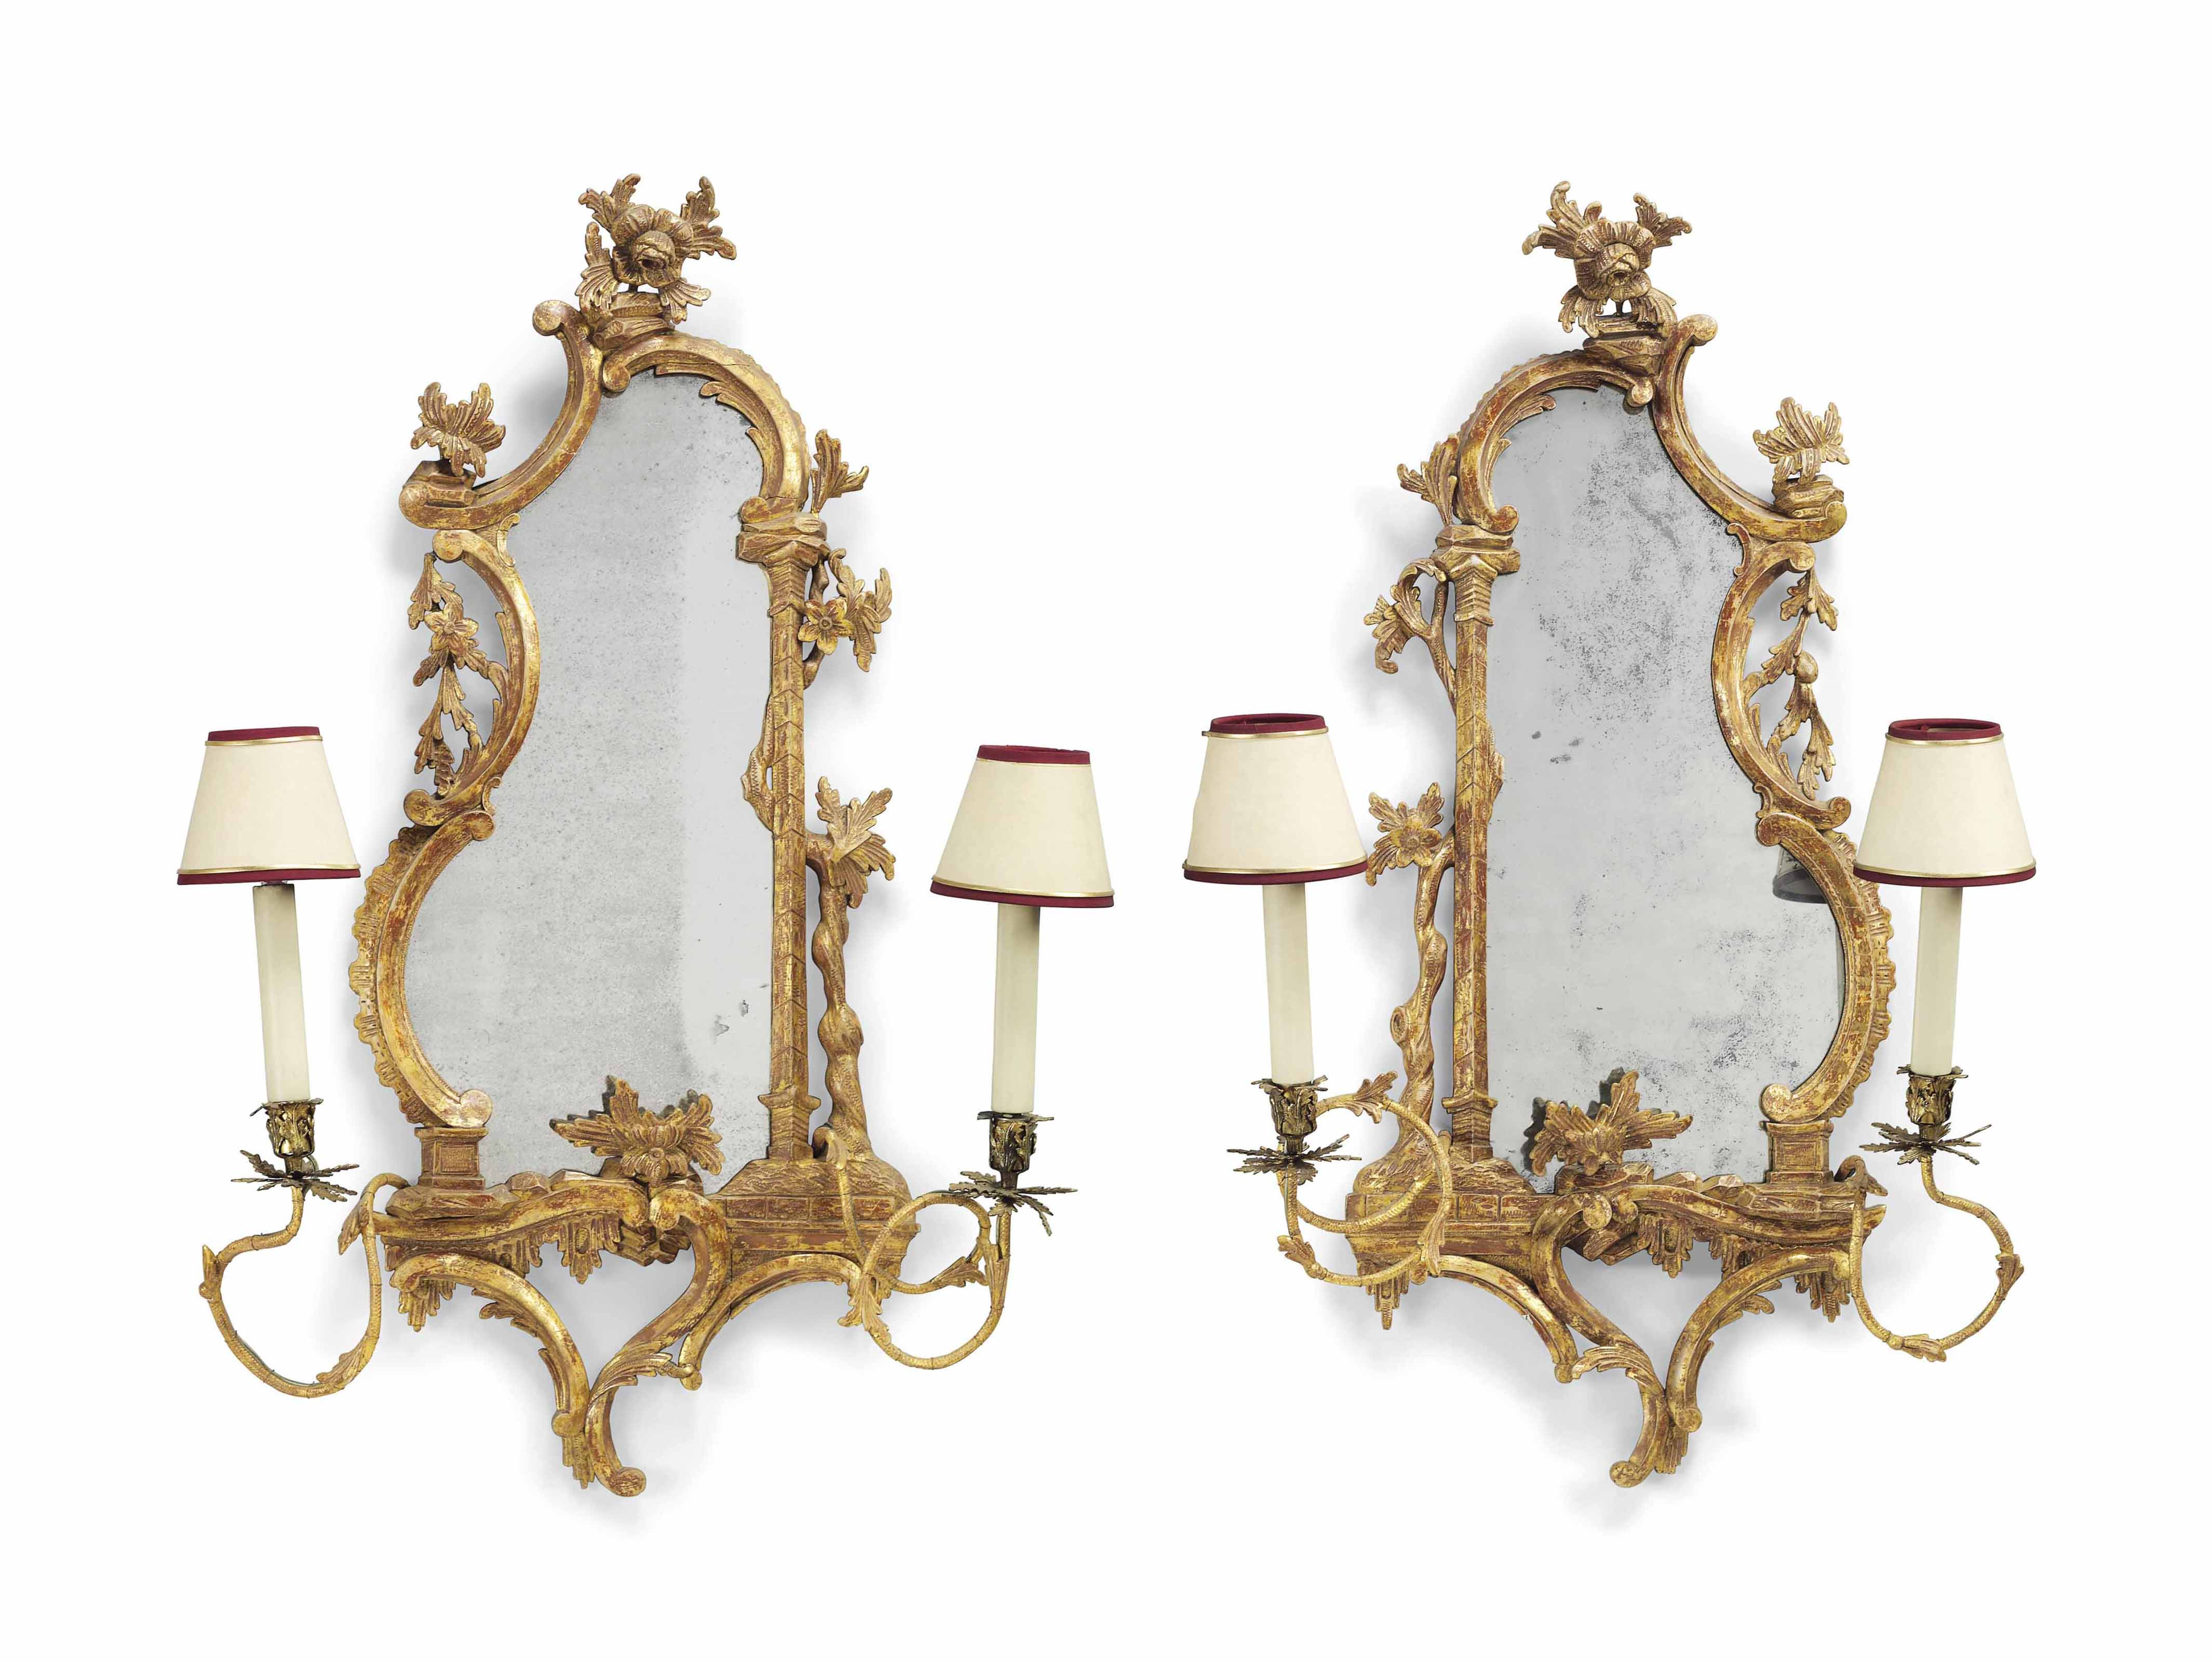 A PAIR OF GEORGE III GILTWOOD TWIN-BRANCH GIRANDOLES